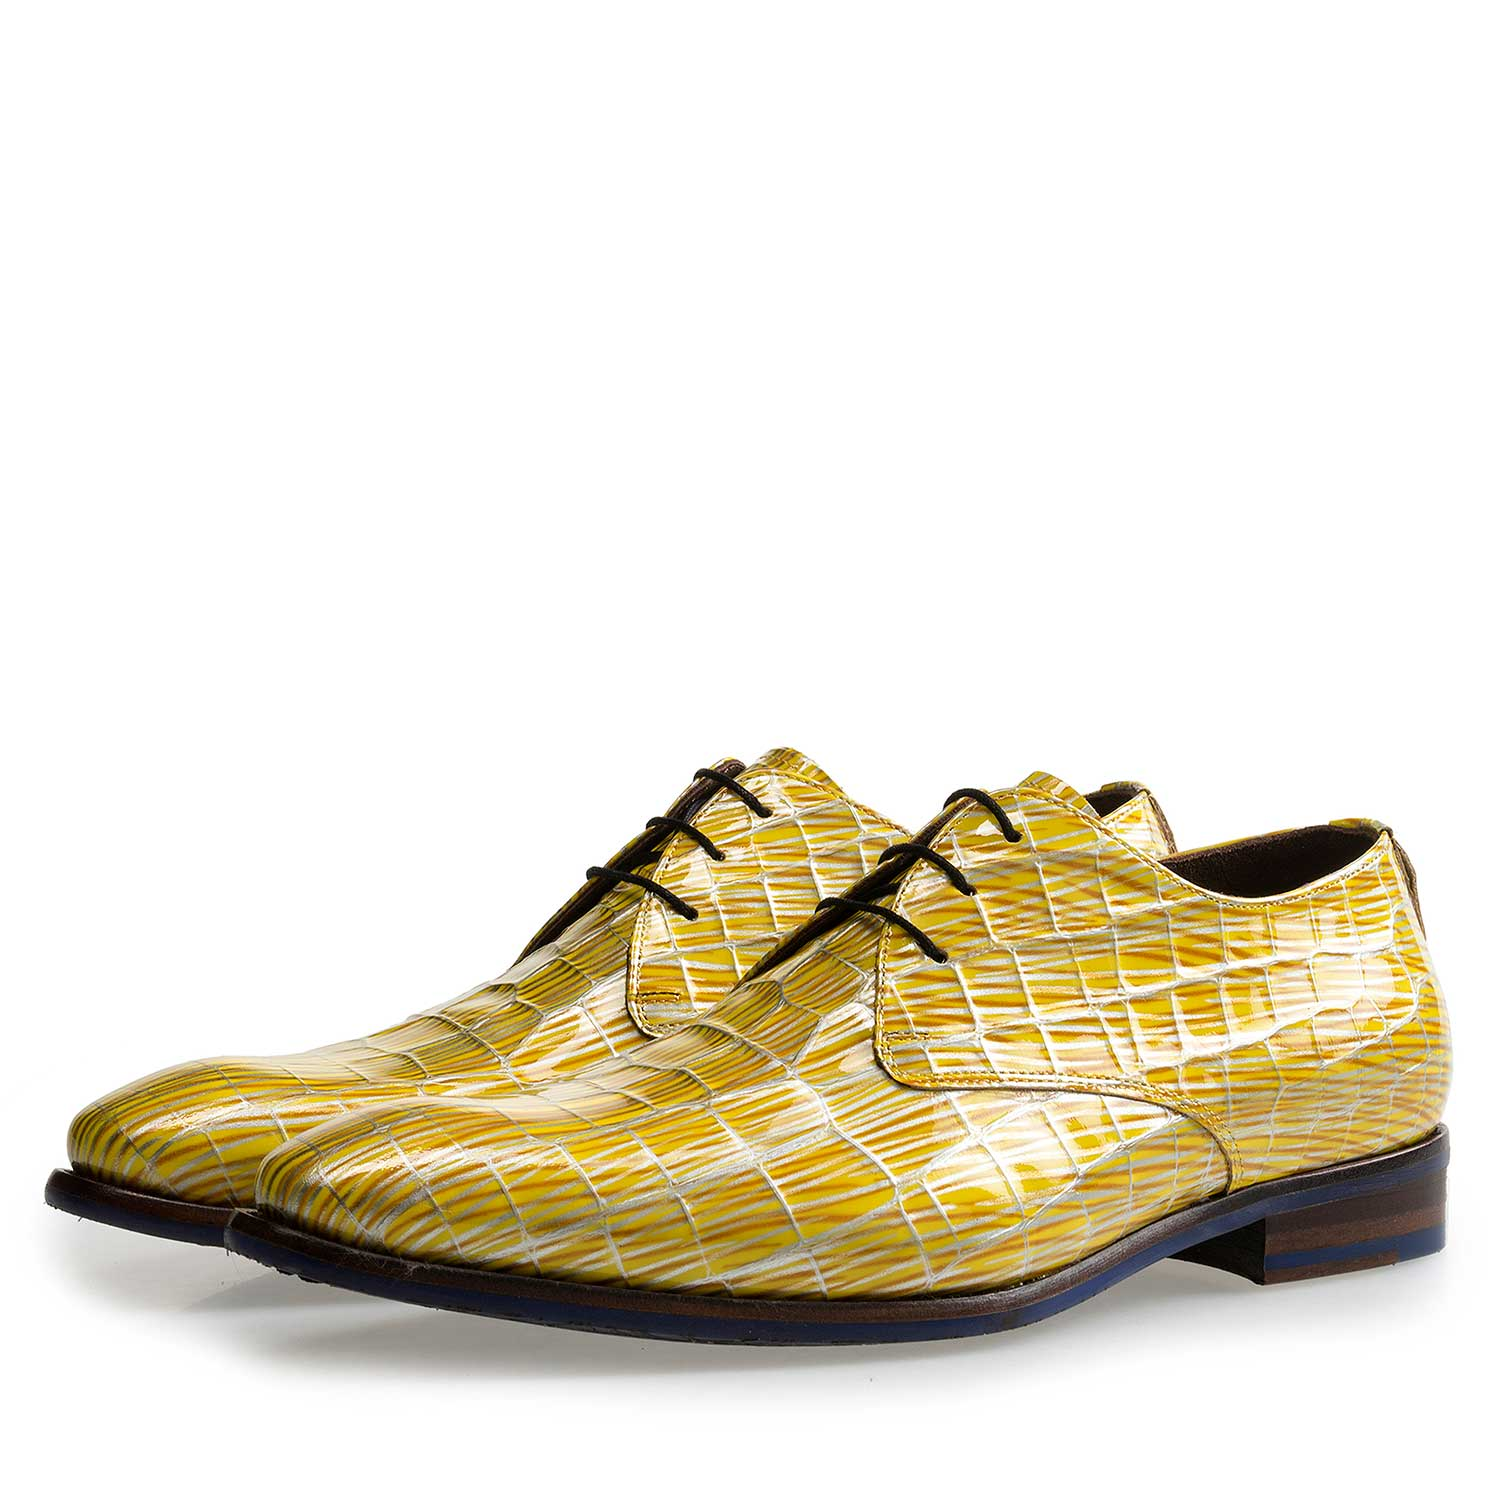 14104/03 - Yellow patent leather lace-shoe with print